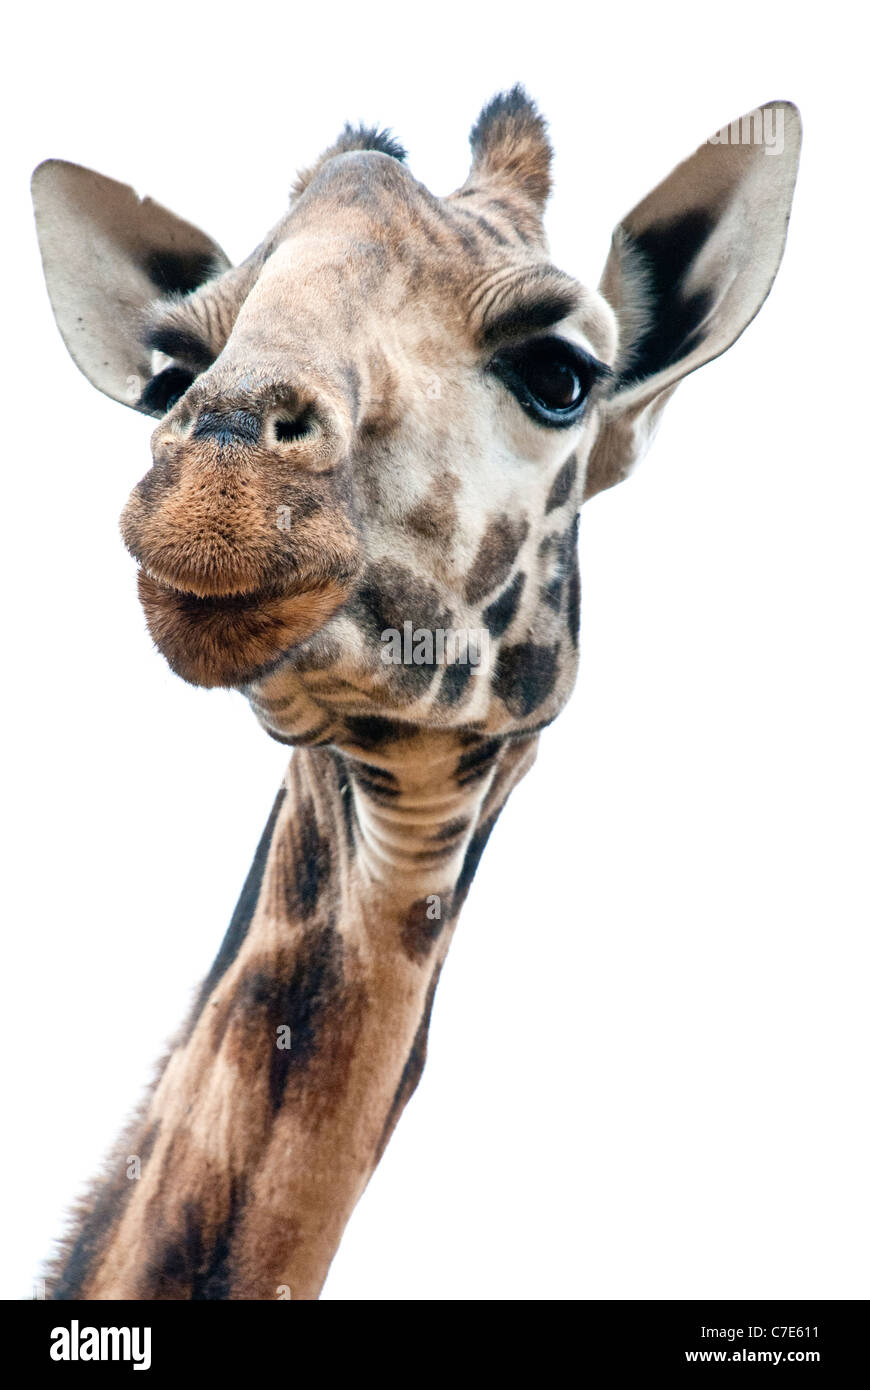 Head Shot of Rothschild Giraffe, Kenya, Africa - Stock Image